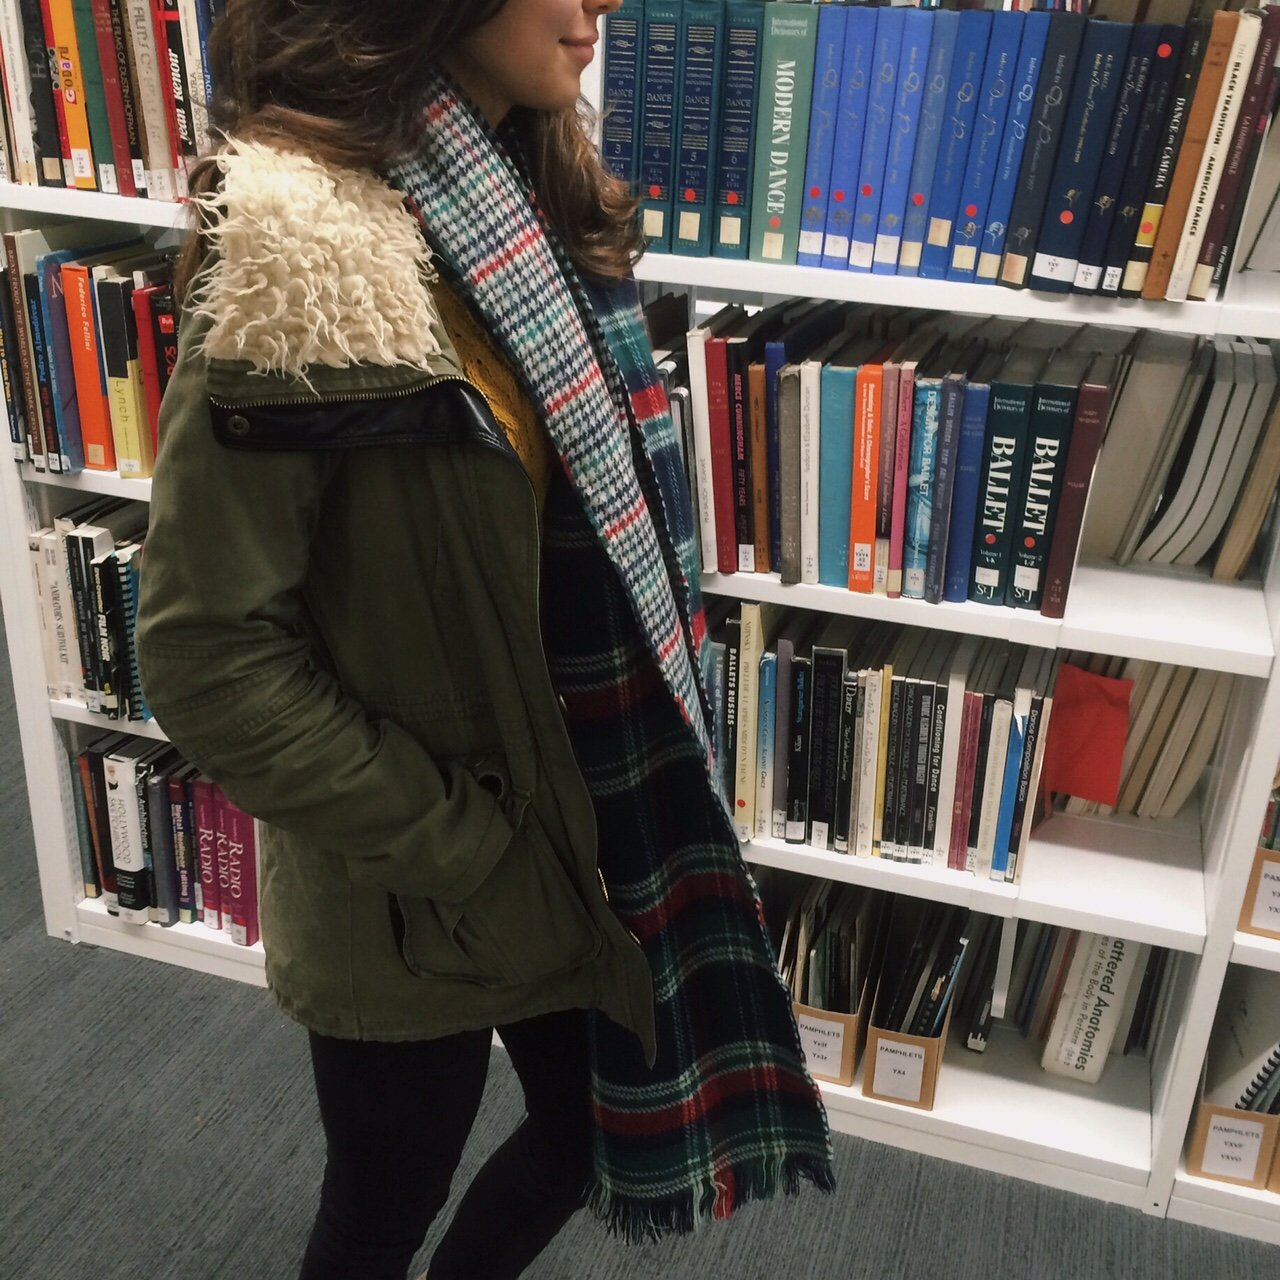 Classic study look for any busy third year spending most of their time in the library..